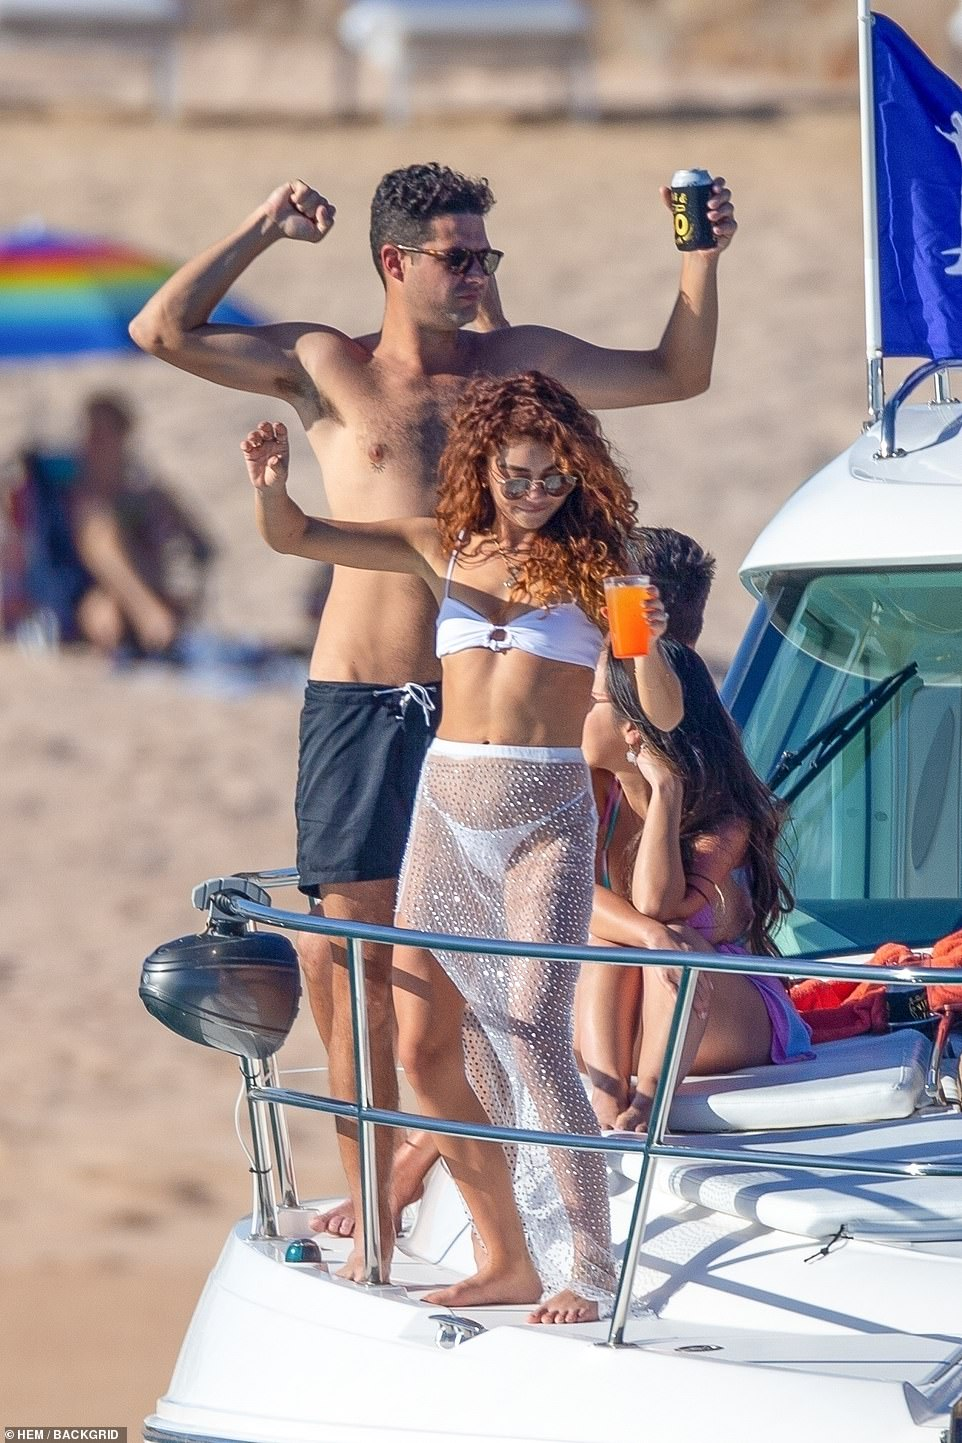 All aboard the love boat! Hyland danced on the deck of the boat with her fiance Wells Adams